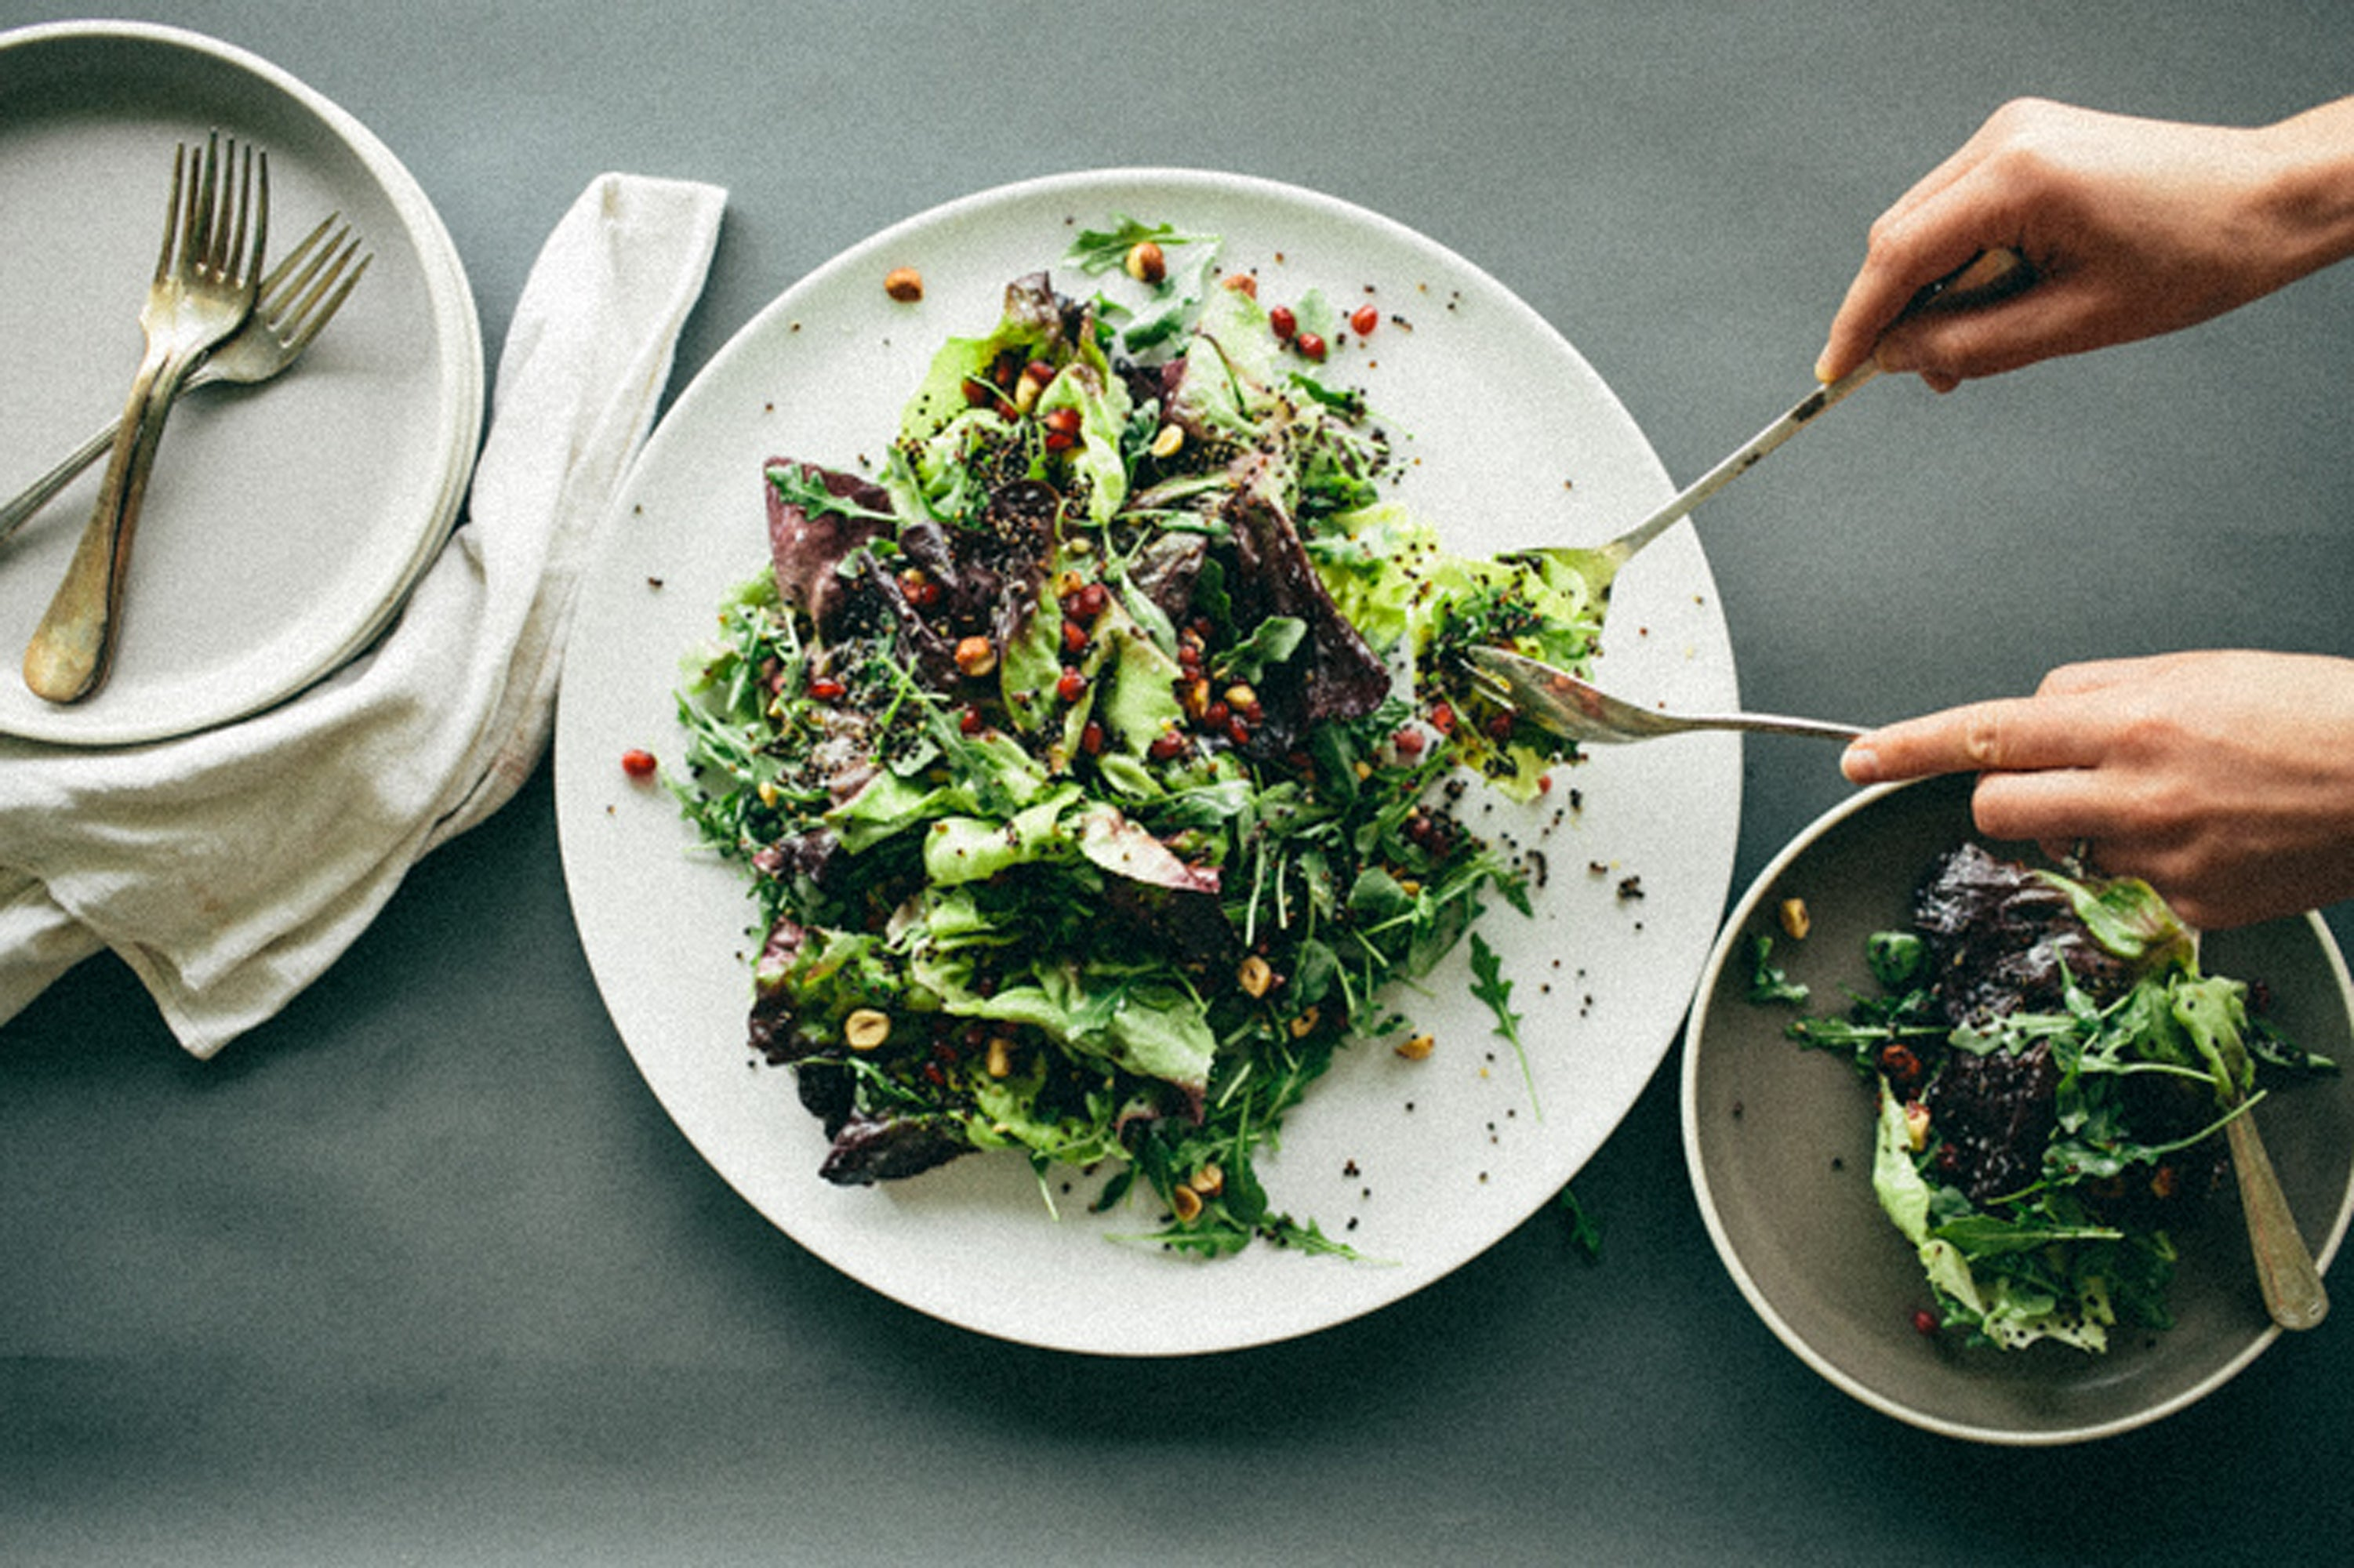 Get Your Life Right With These 7 Warming Winter Salads